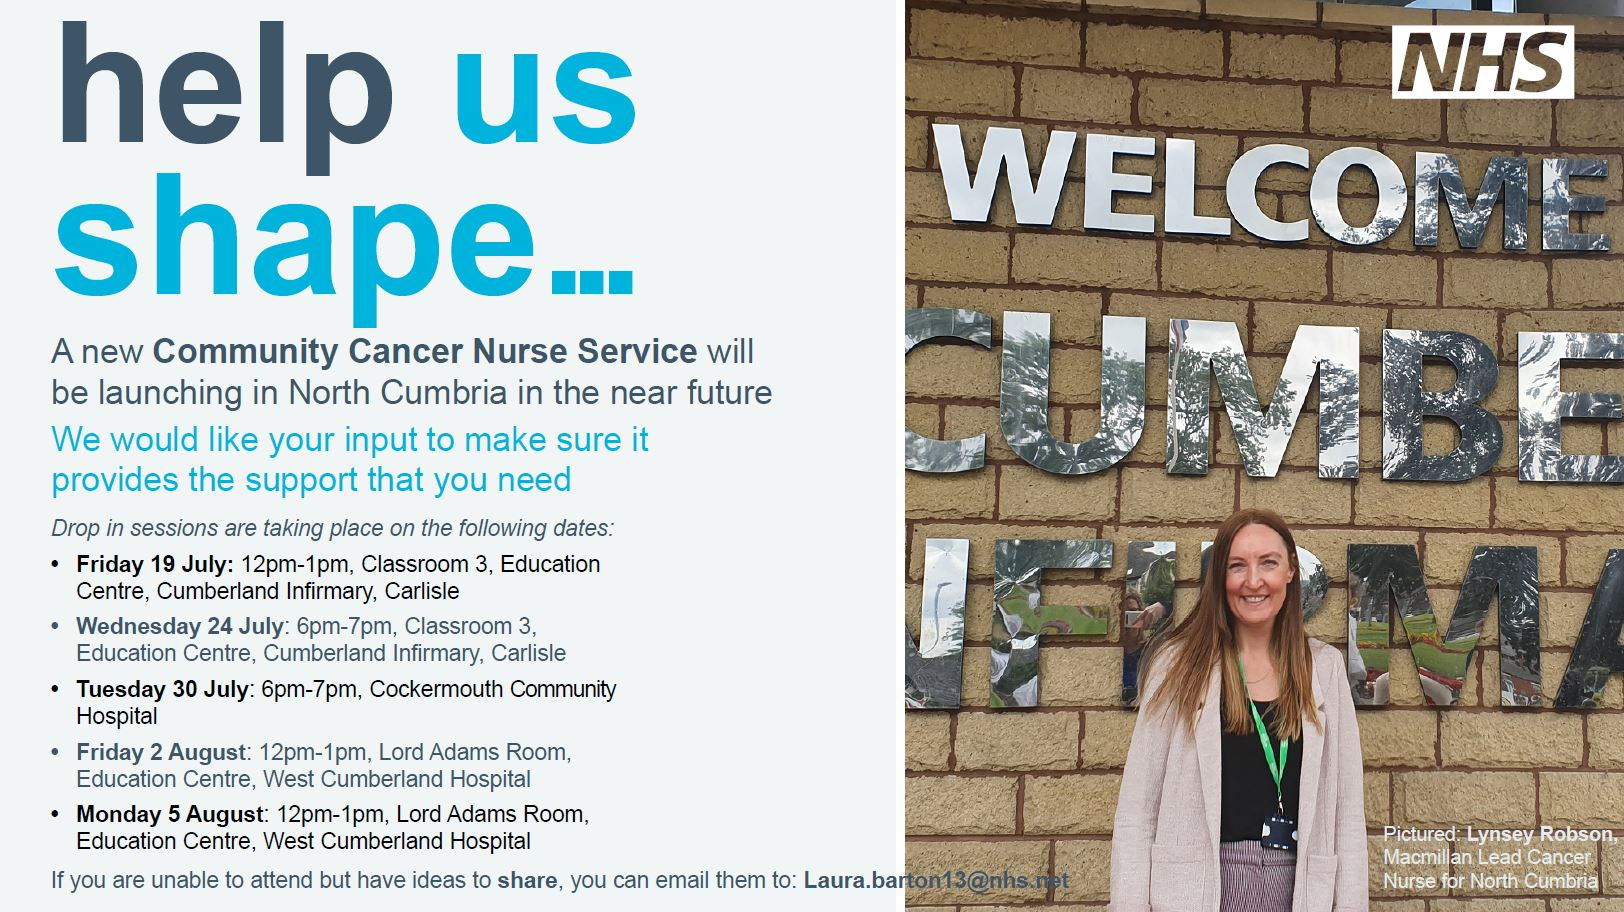 Your input needed to design a new Community Cancer Nurse Service for North Cumbria